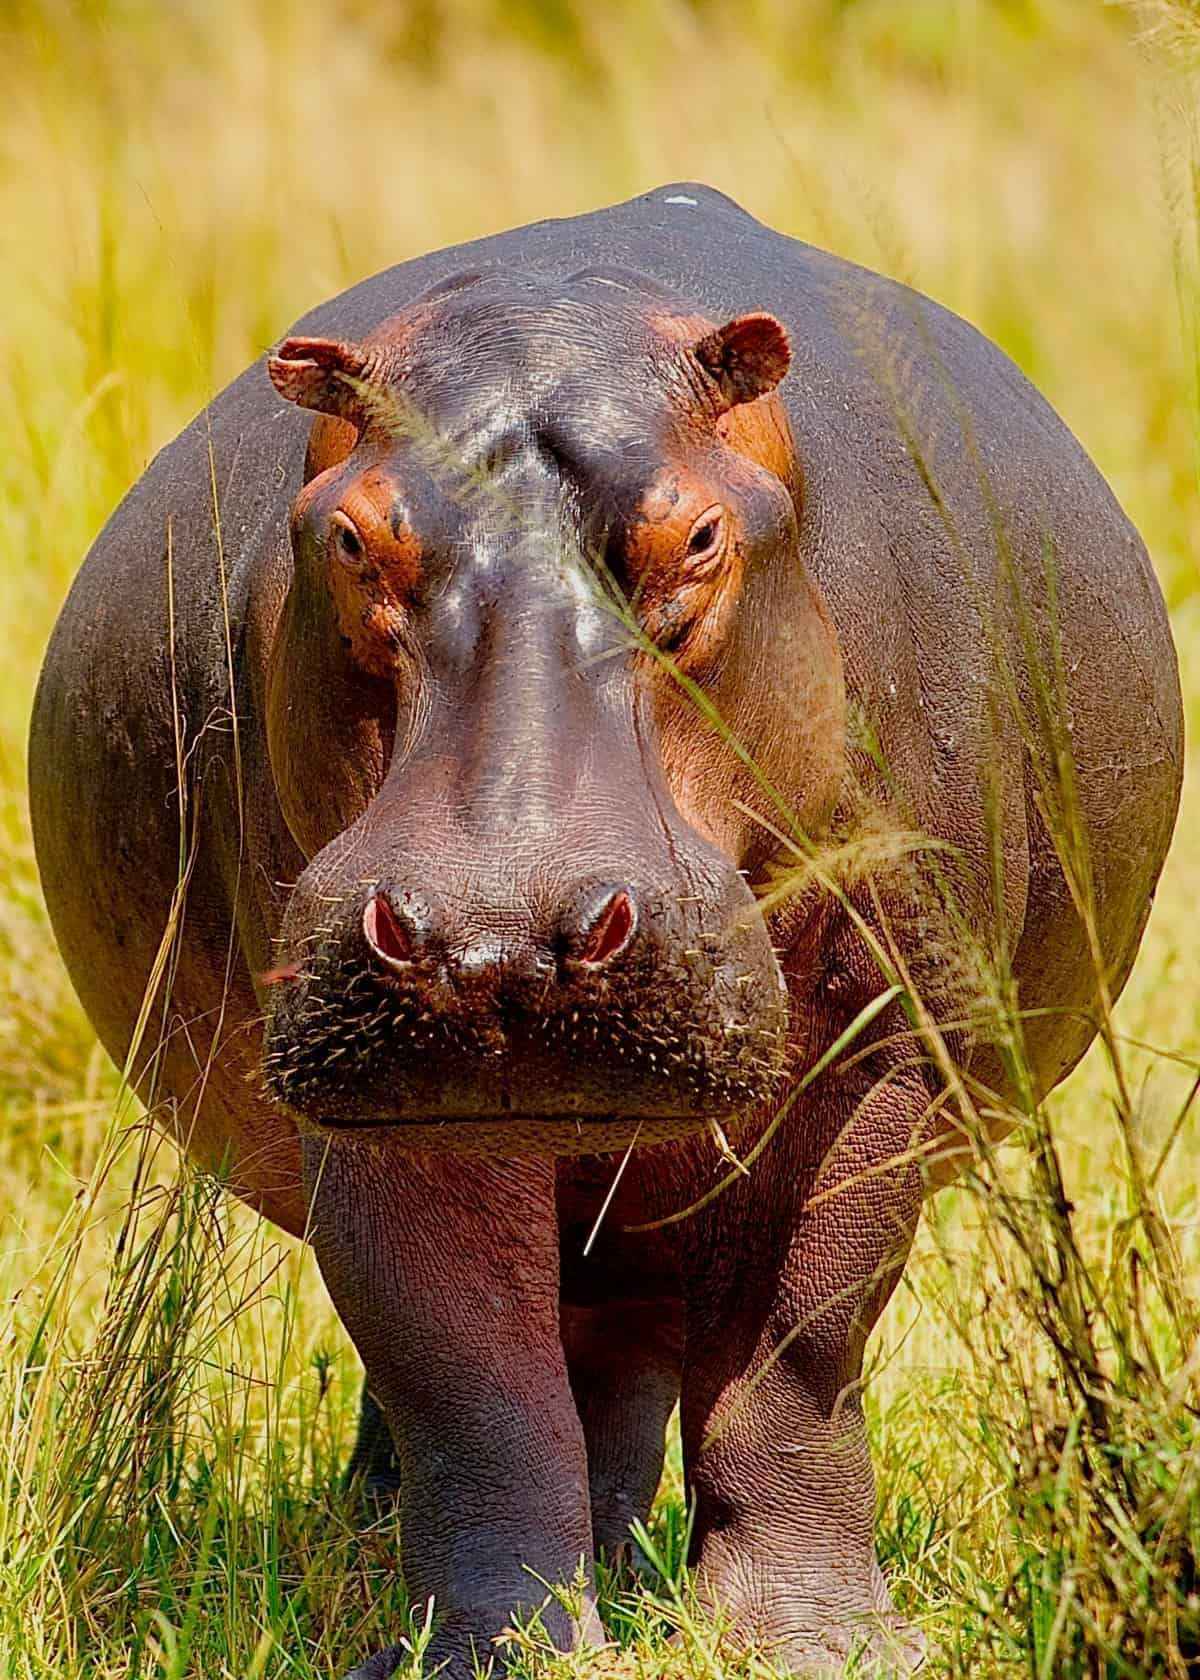 animals in 2020 Hippo facts, Dangerous animals, Africa